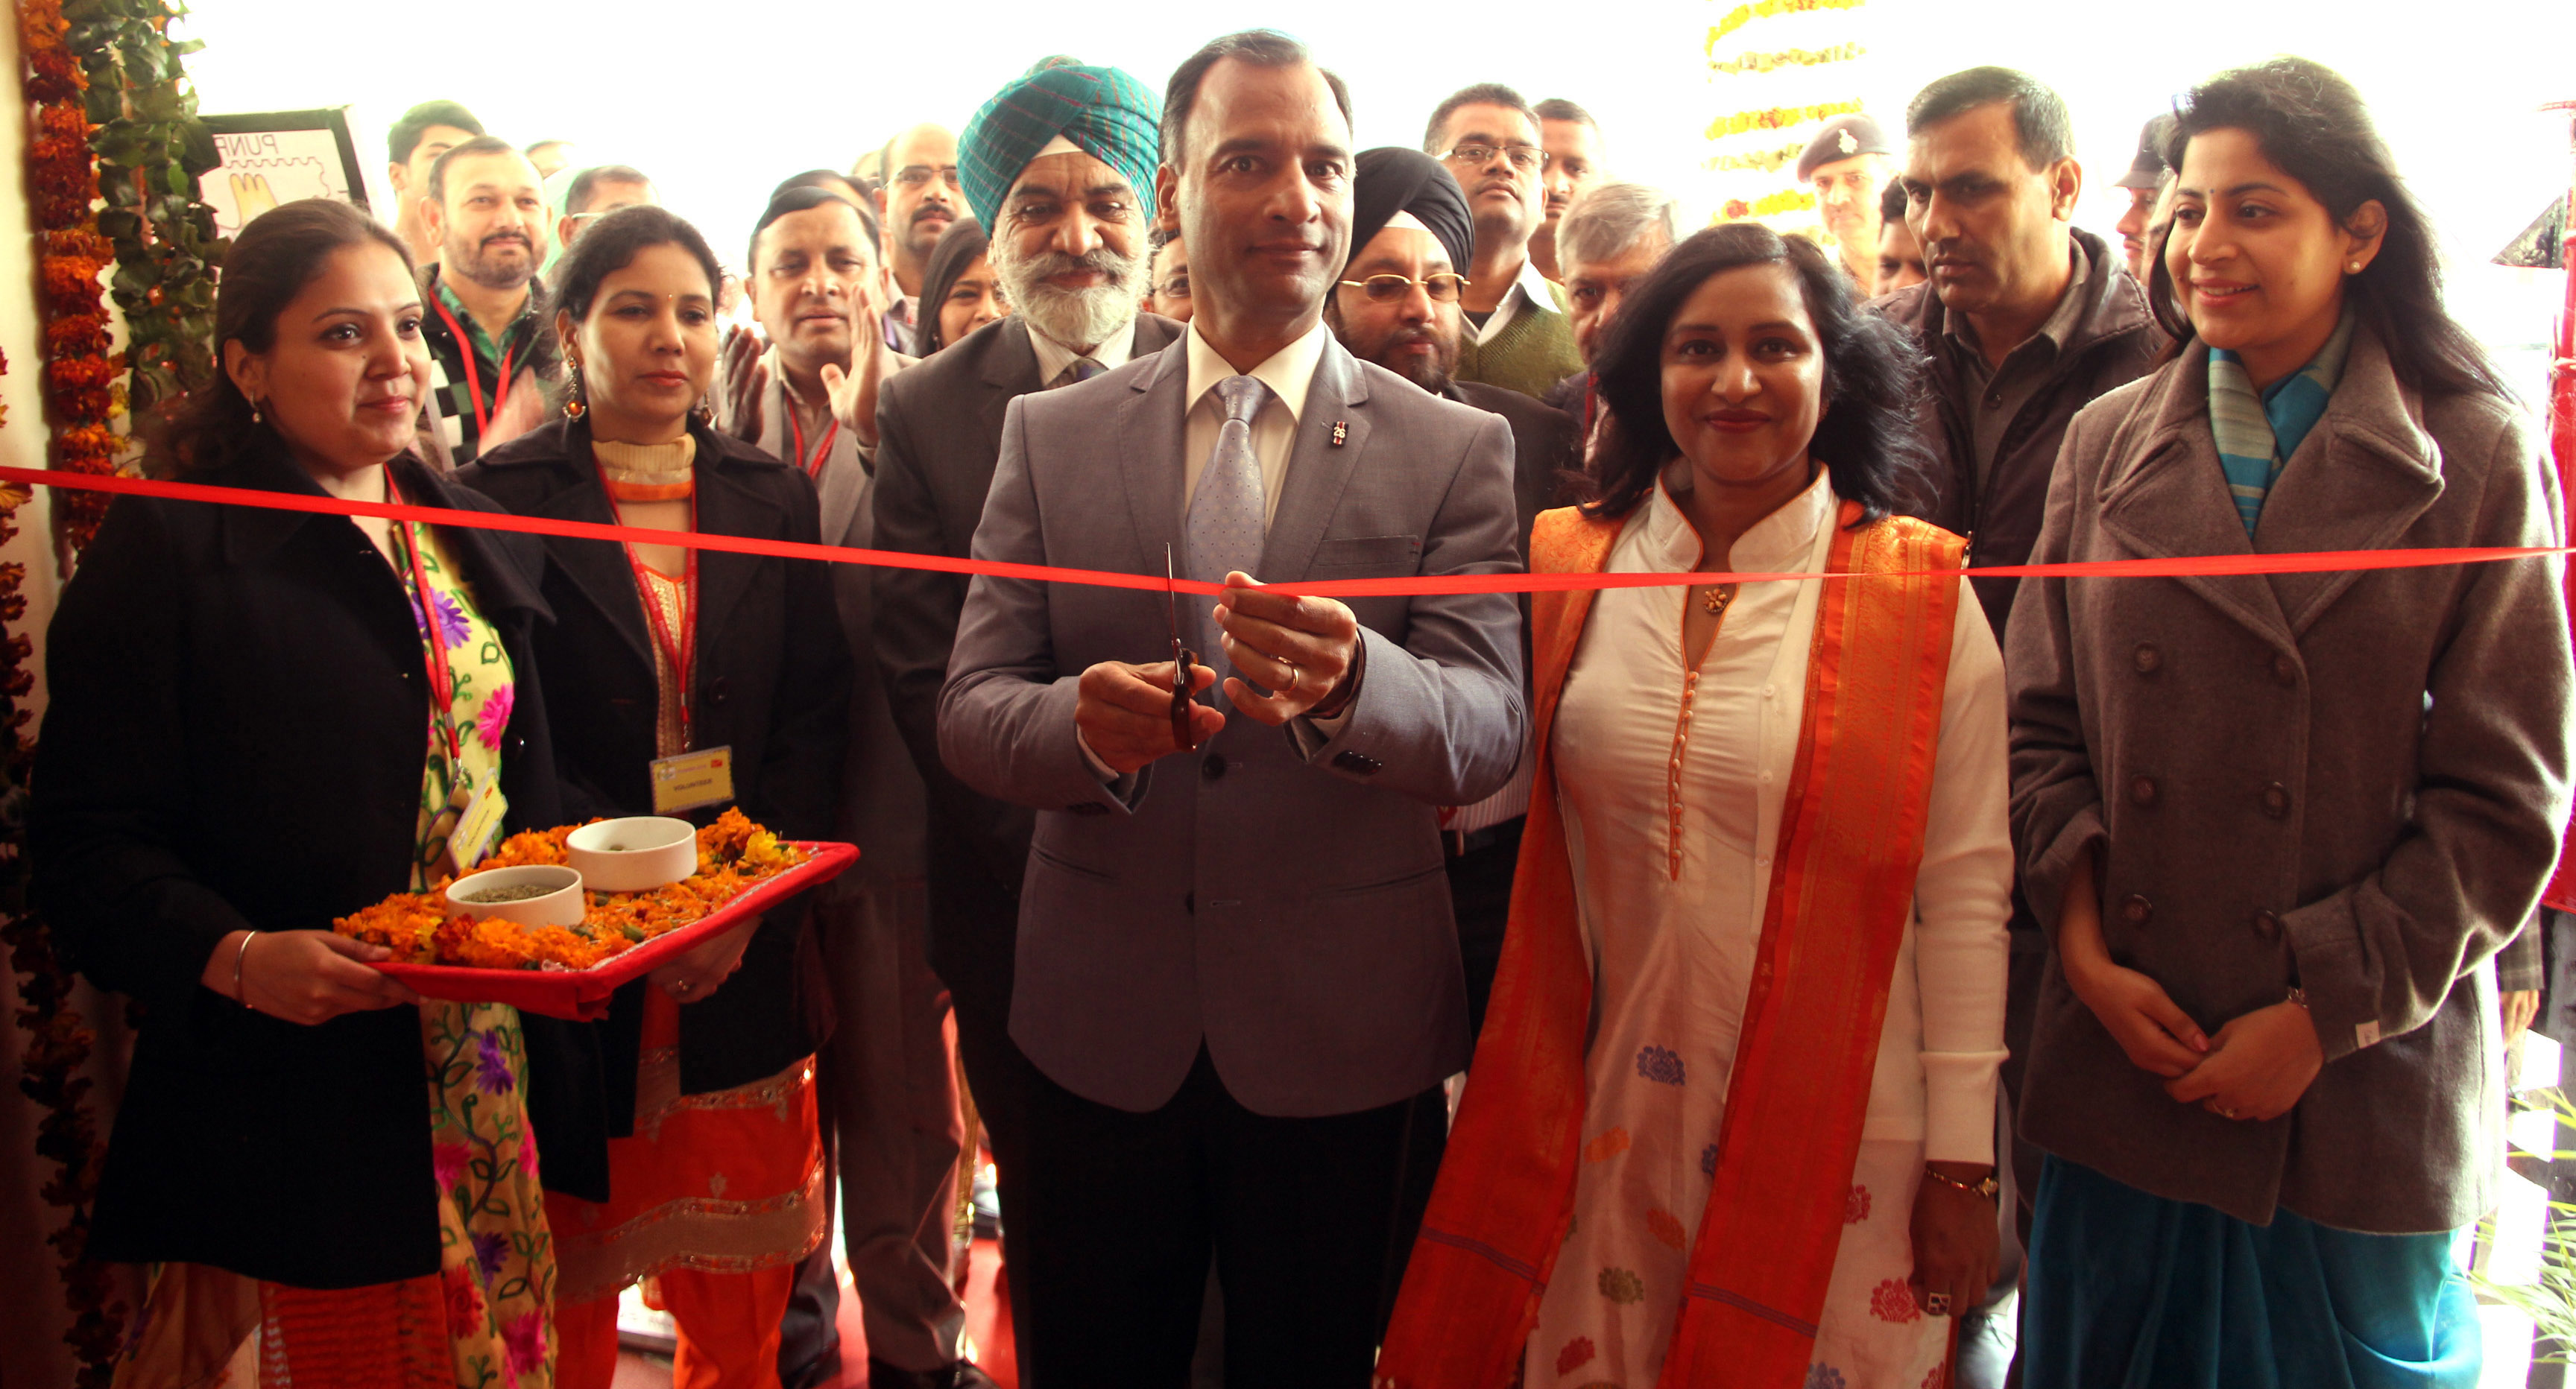 The Adviser to the Administrator, UT, Chandigarh, Mr. Vijay Dev,inaugurating the State Level Philatelic Exhibition Punpex 2016 India Post Punjab Circle at DAV College, Sector 10, Chandigarh on Saturday, February 06, 2016.